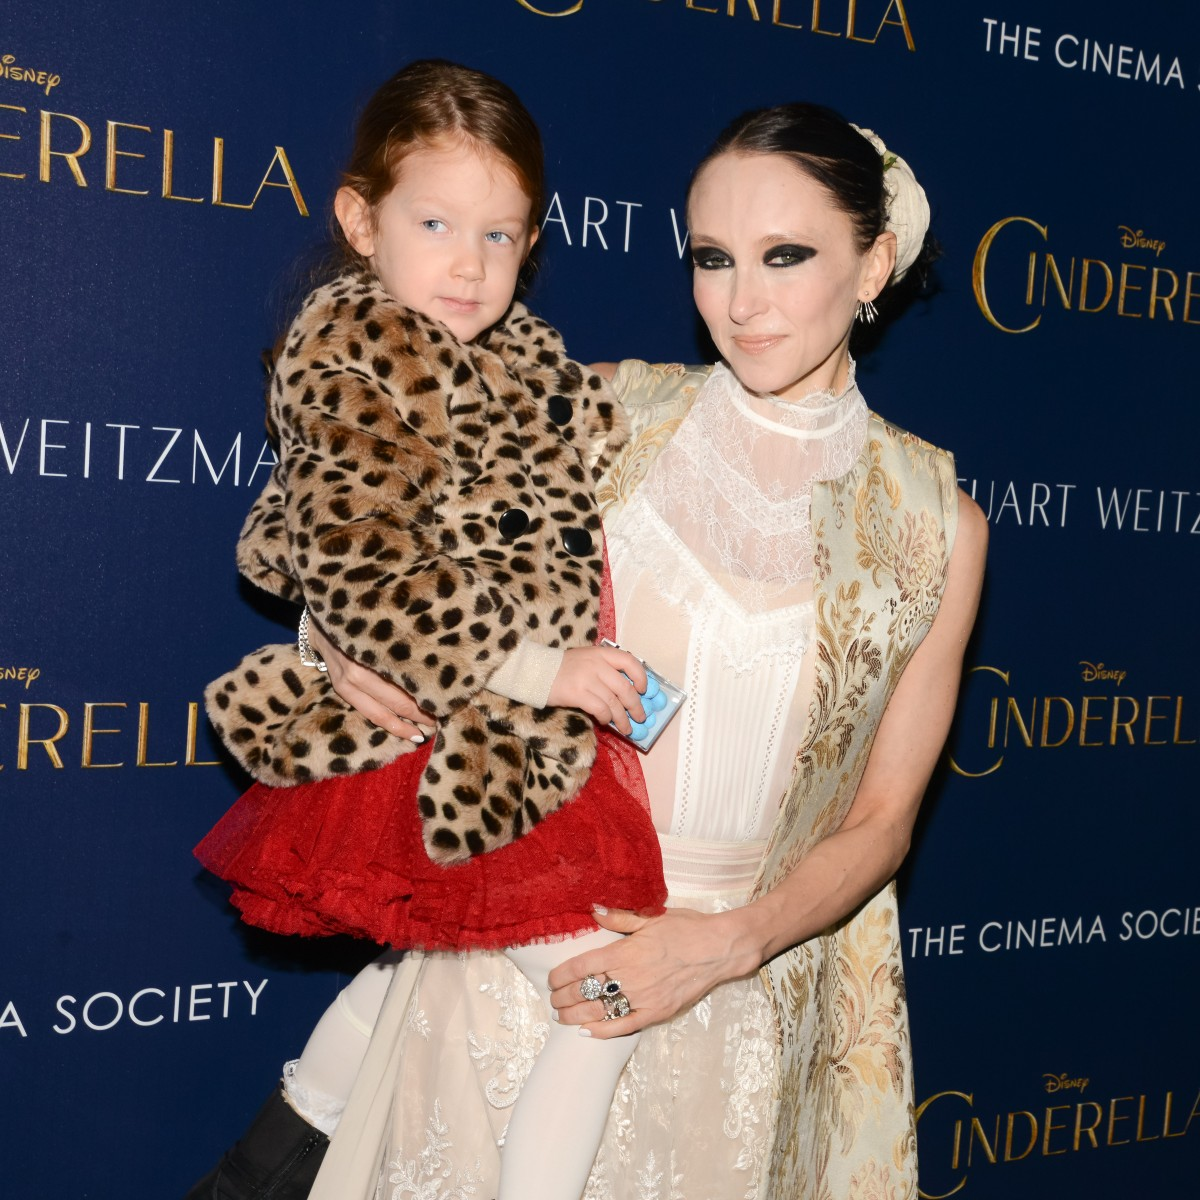 THE CINEMA SOCIETY & STUART WEITZMAN host a special screening of Disney's Cinderella